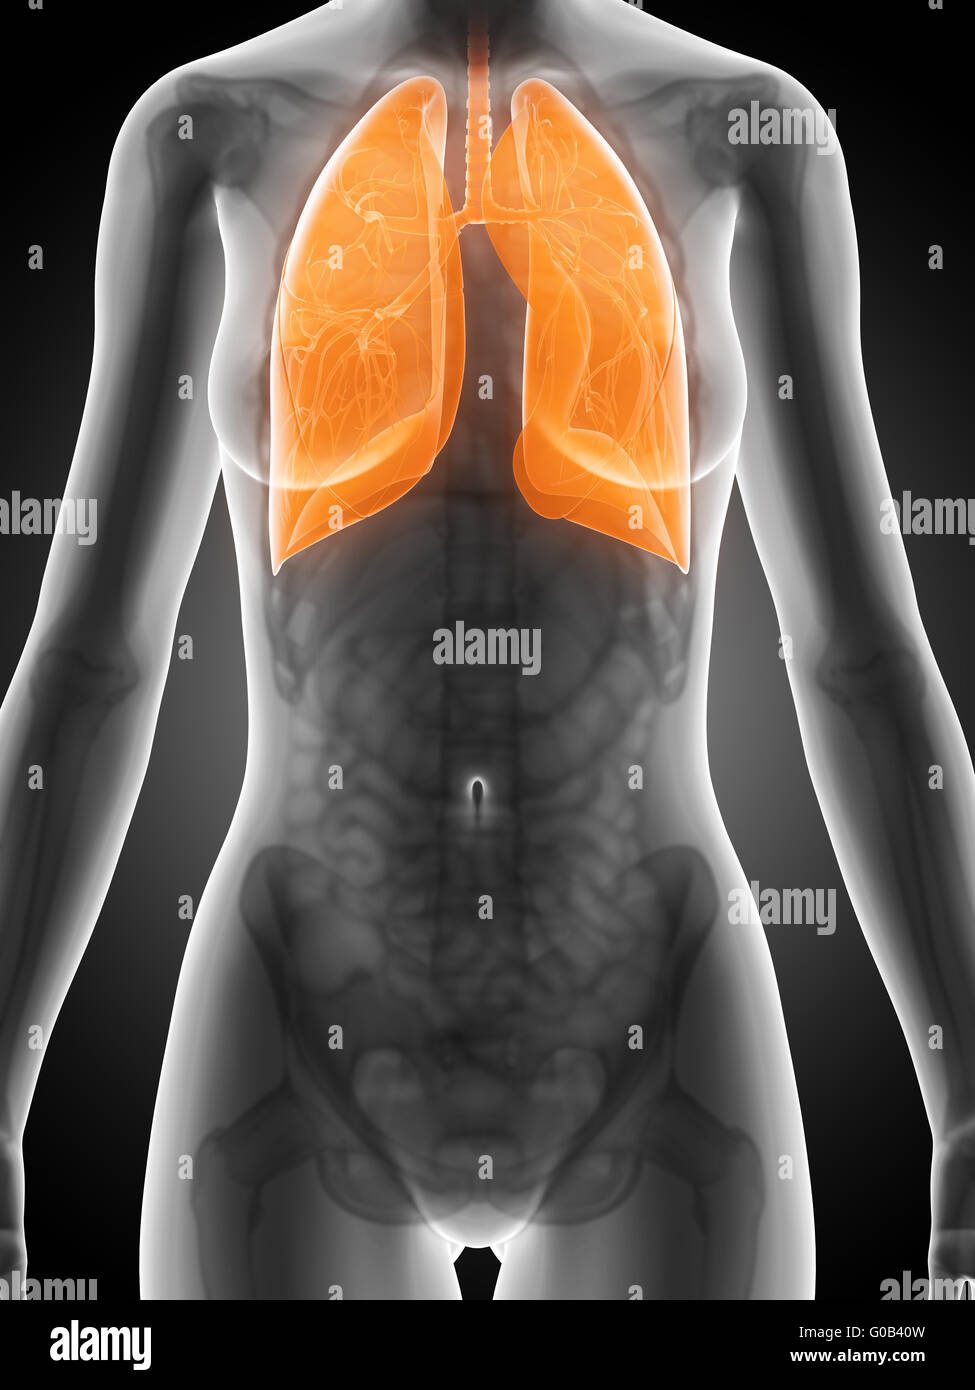 3d rendered illustration of the female anatomy - lung Stock Photo ...